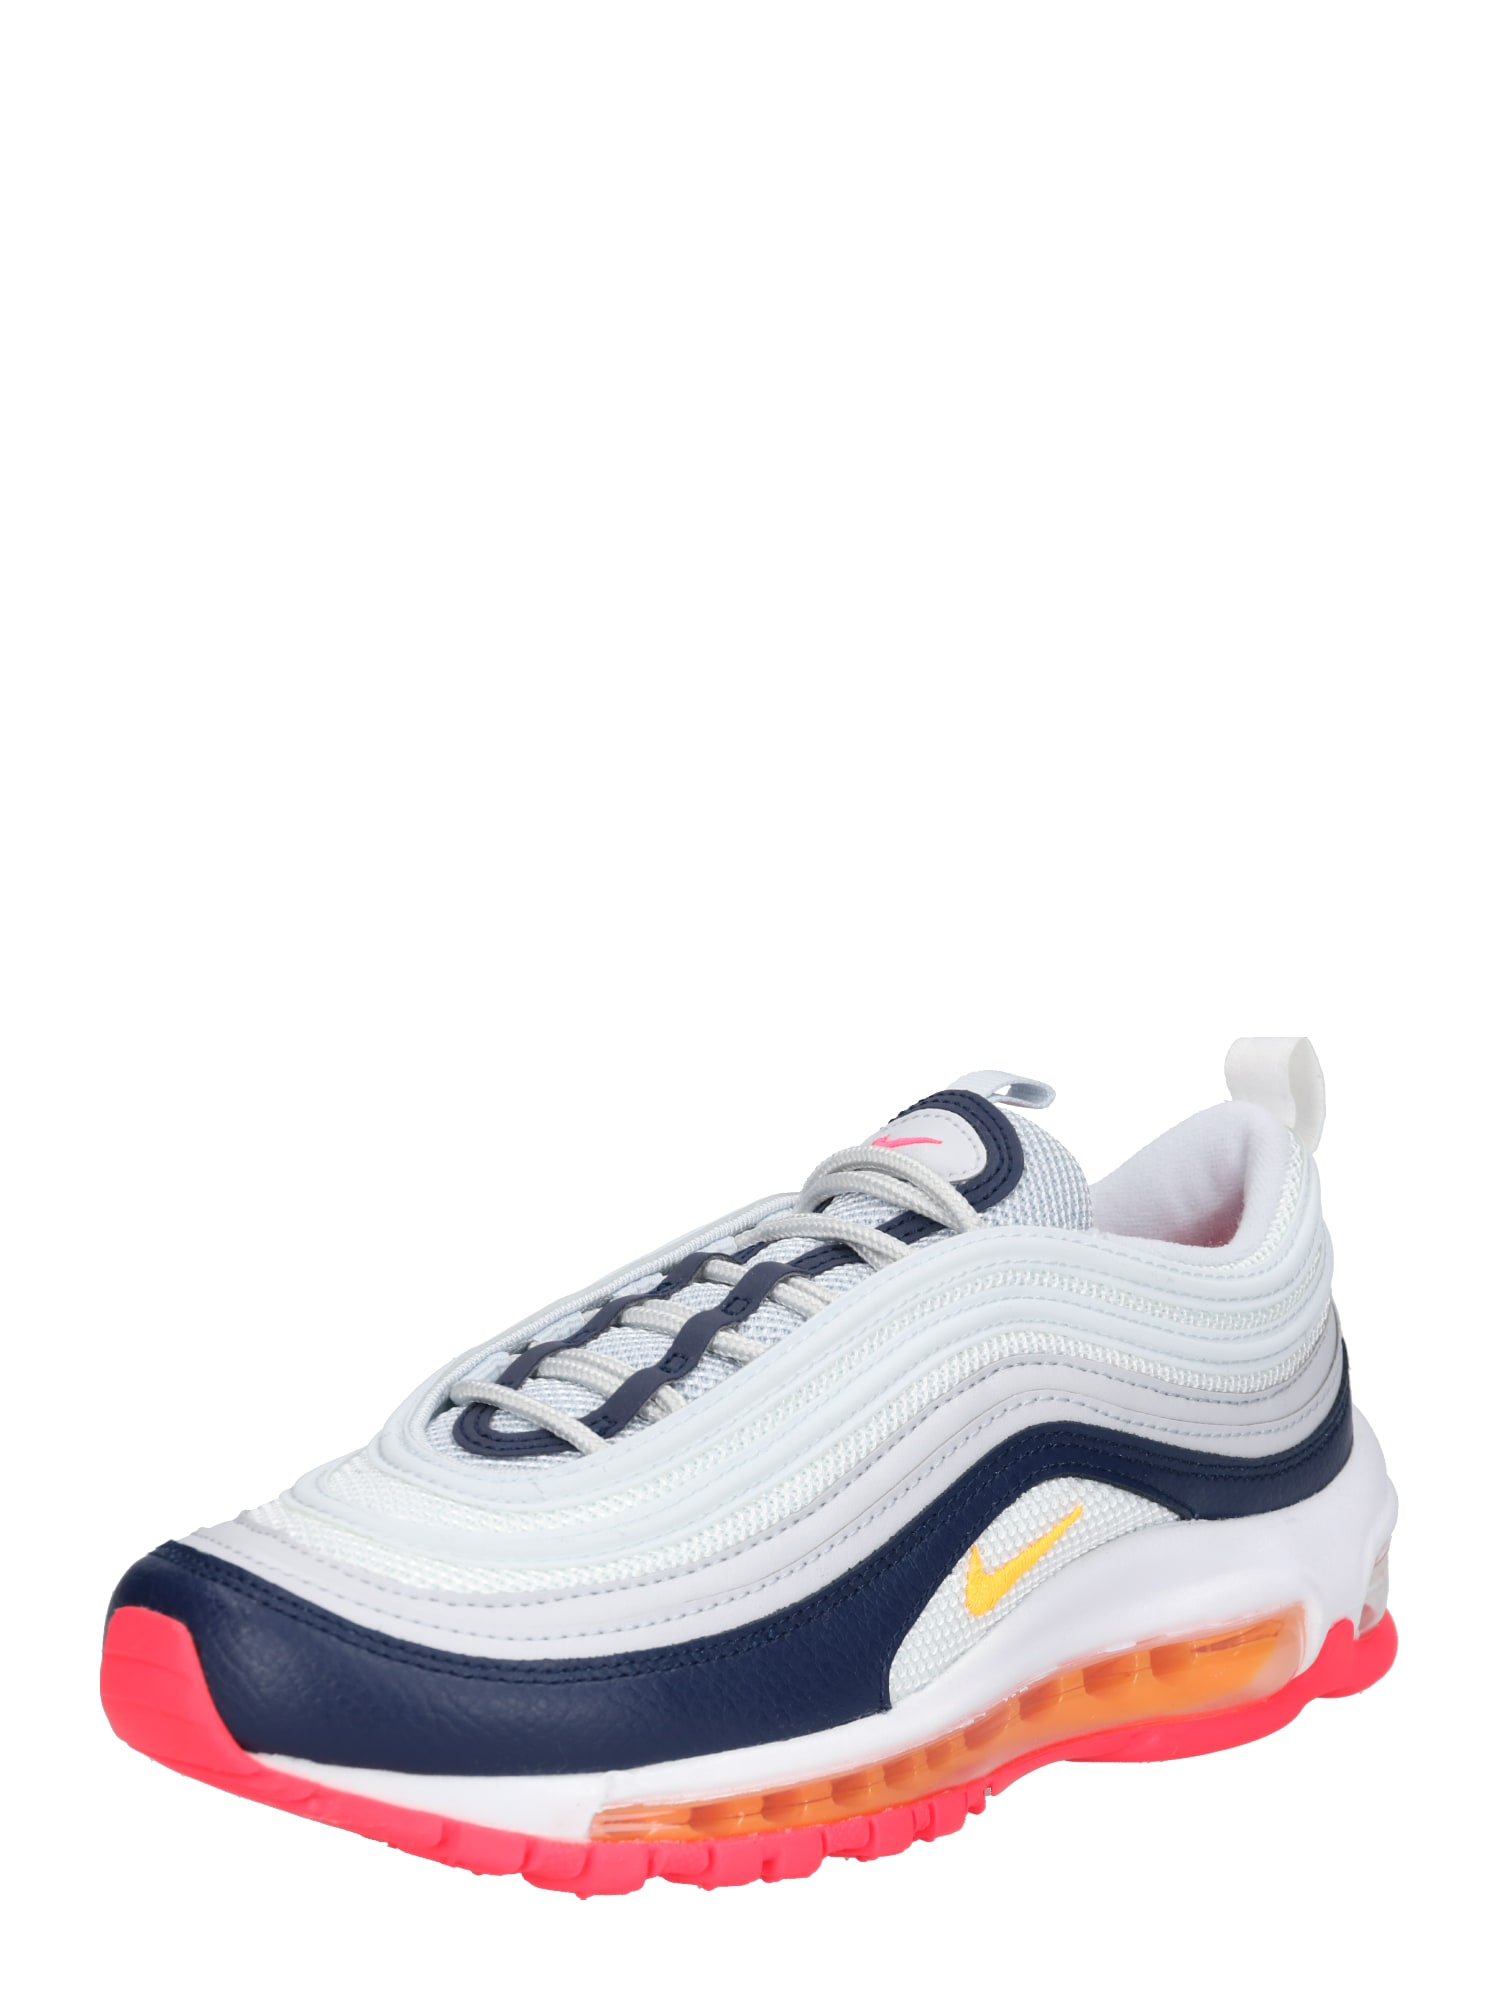 By Photo Congress || Nike Air Max 97 Sale Damen